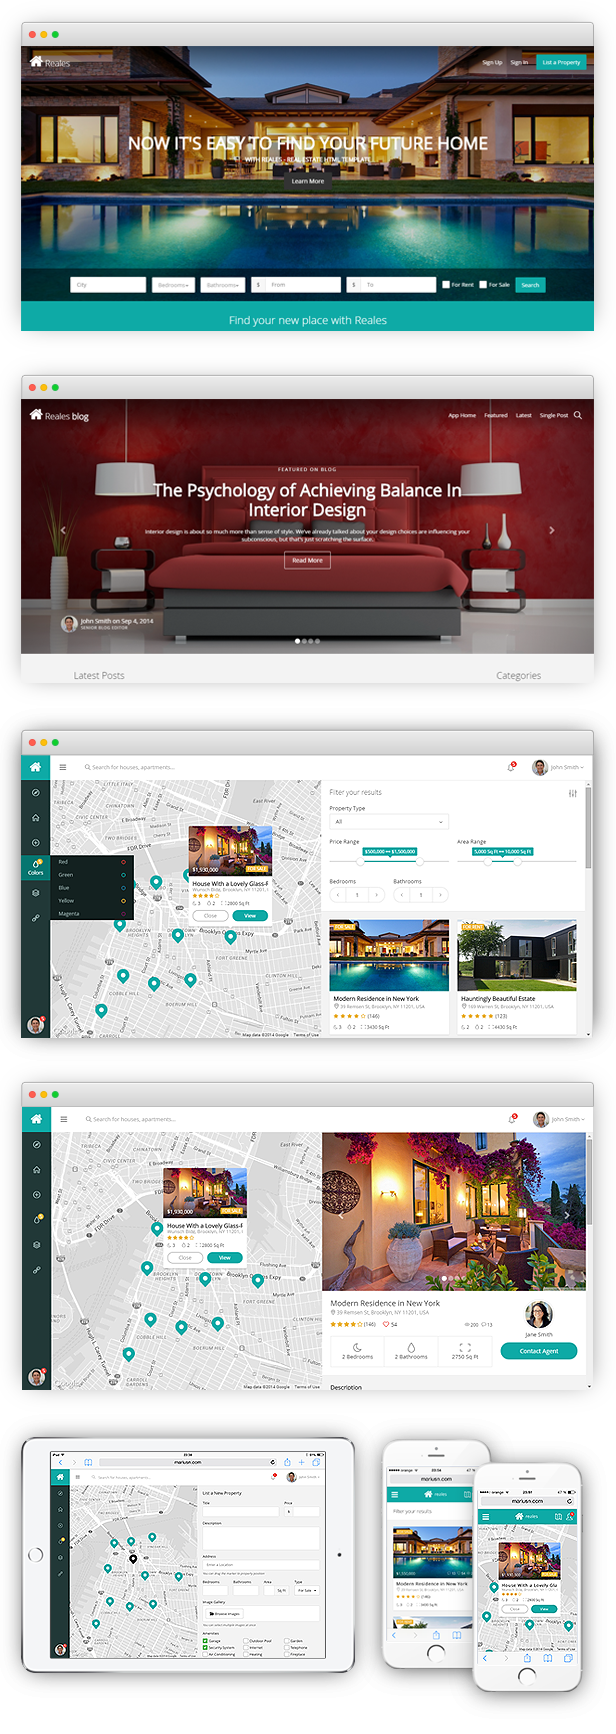 Reales - Real Estate Web Application Template - 1